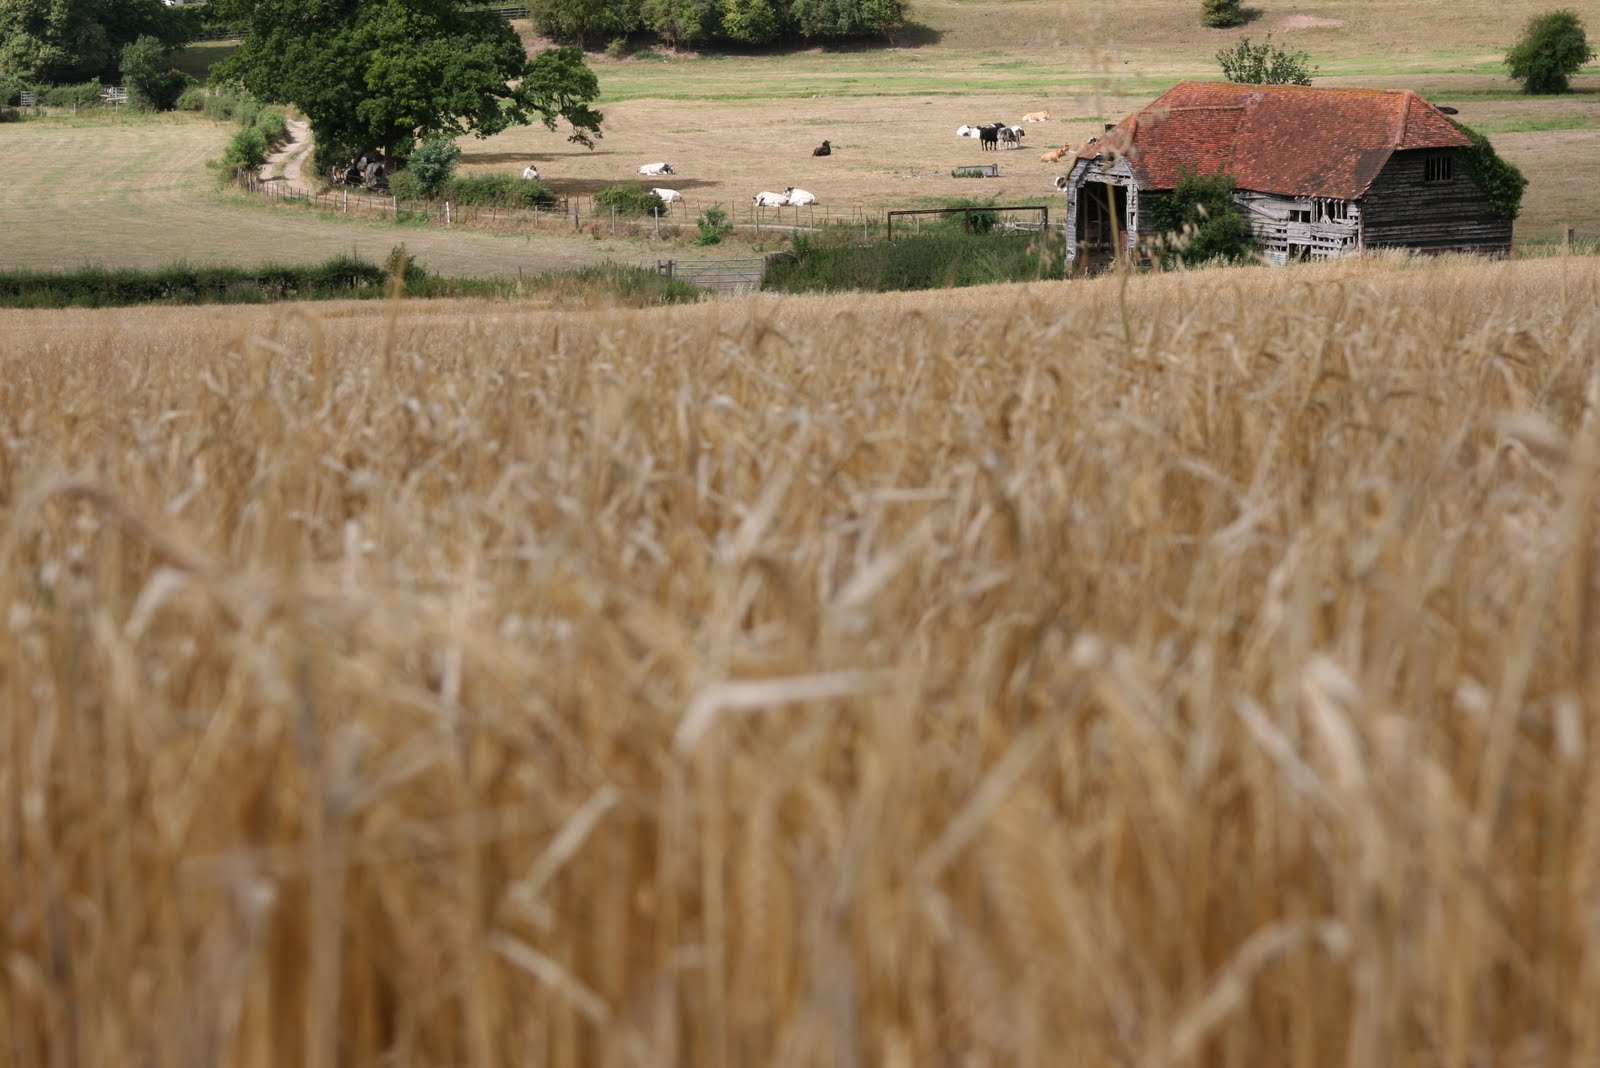 1008 001 Henley via Hambleden Circular, The Thames Valley, England Across the field to the barn